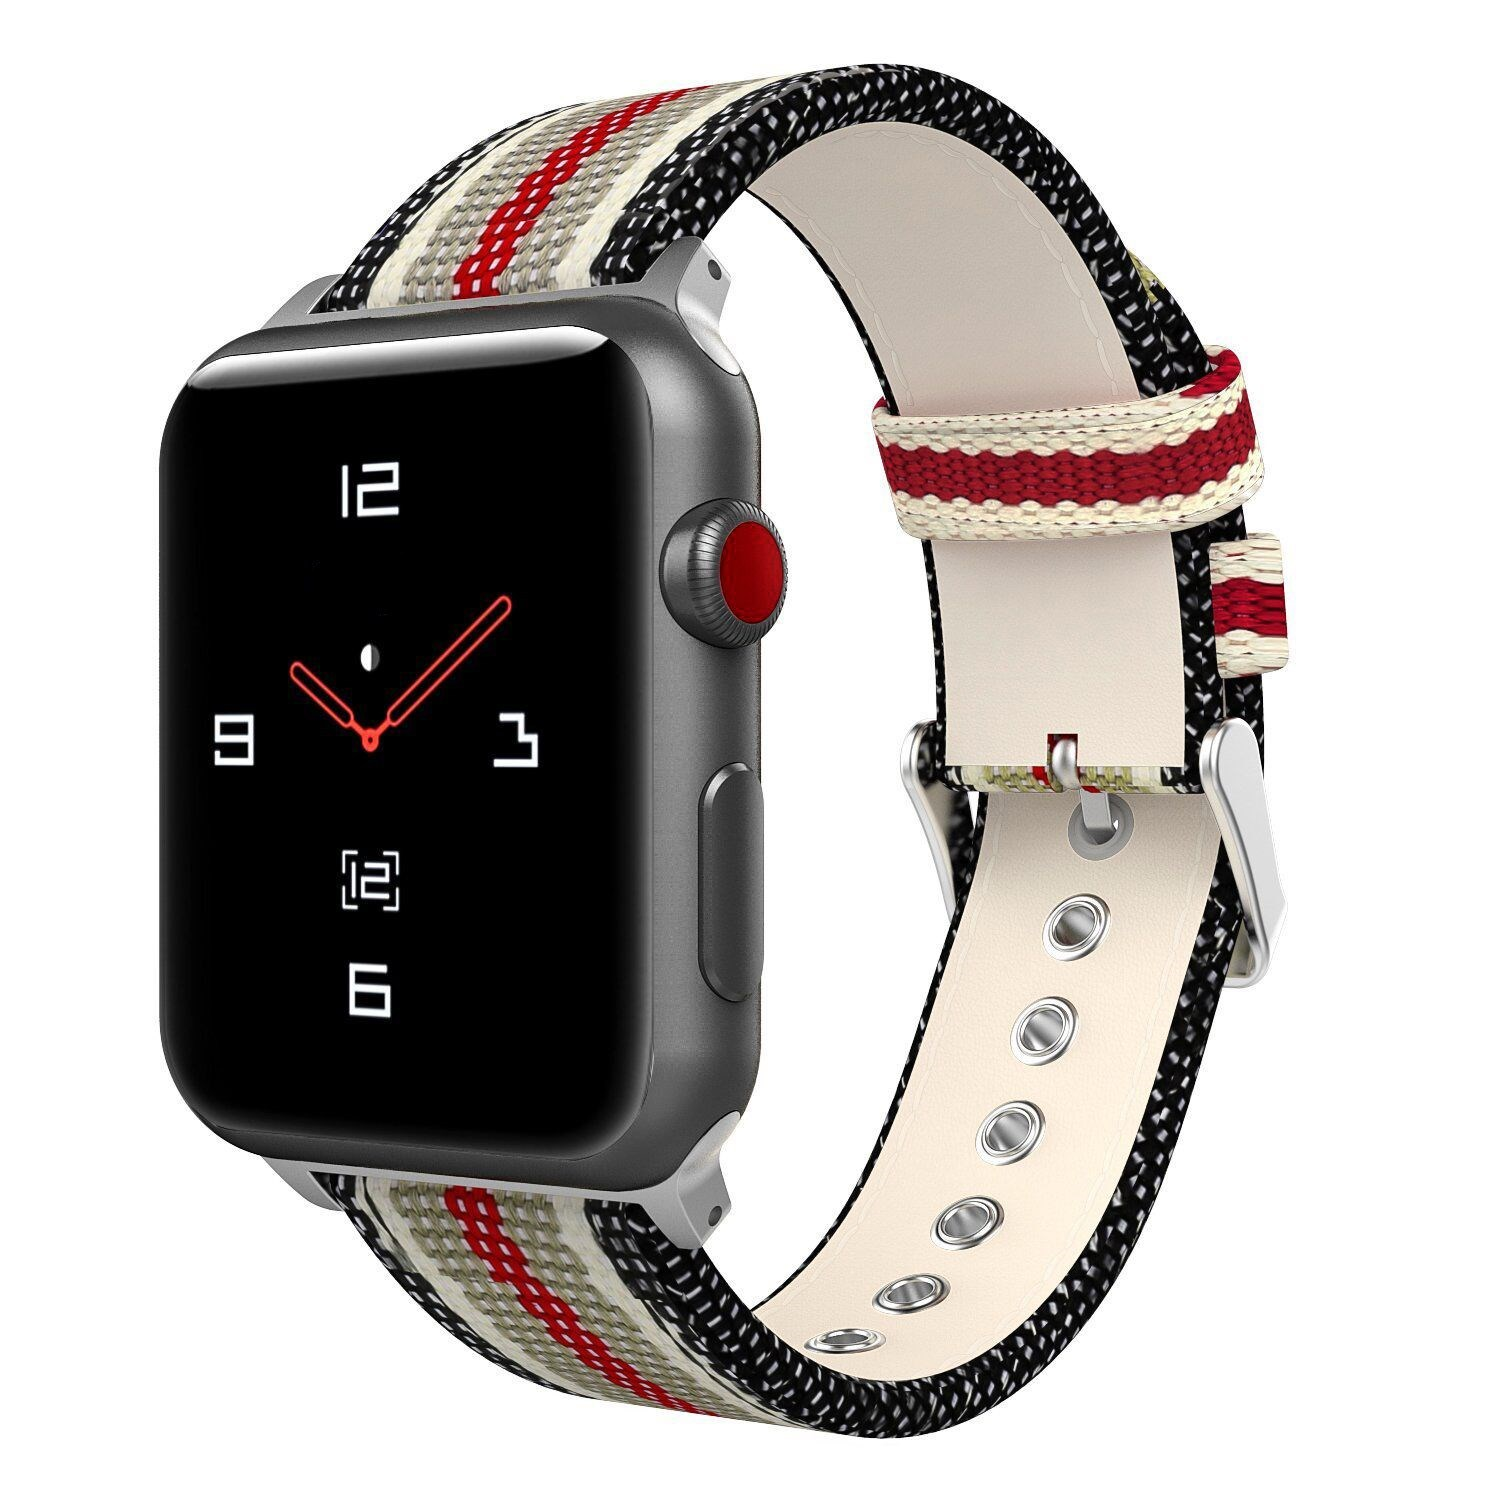 Suitable For Appl Watch Strap Nylon Woven Pattern Leather Watch Strap SAMSUNG S3/Galaxy Watch